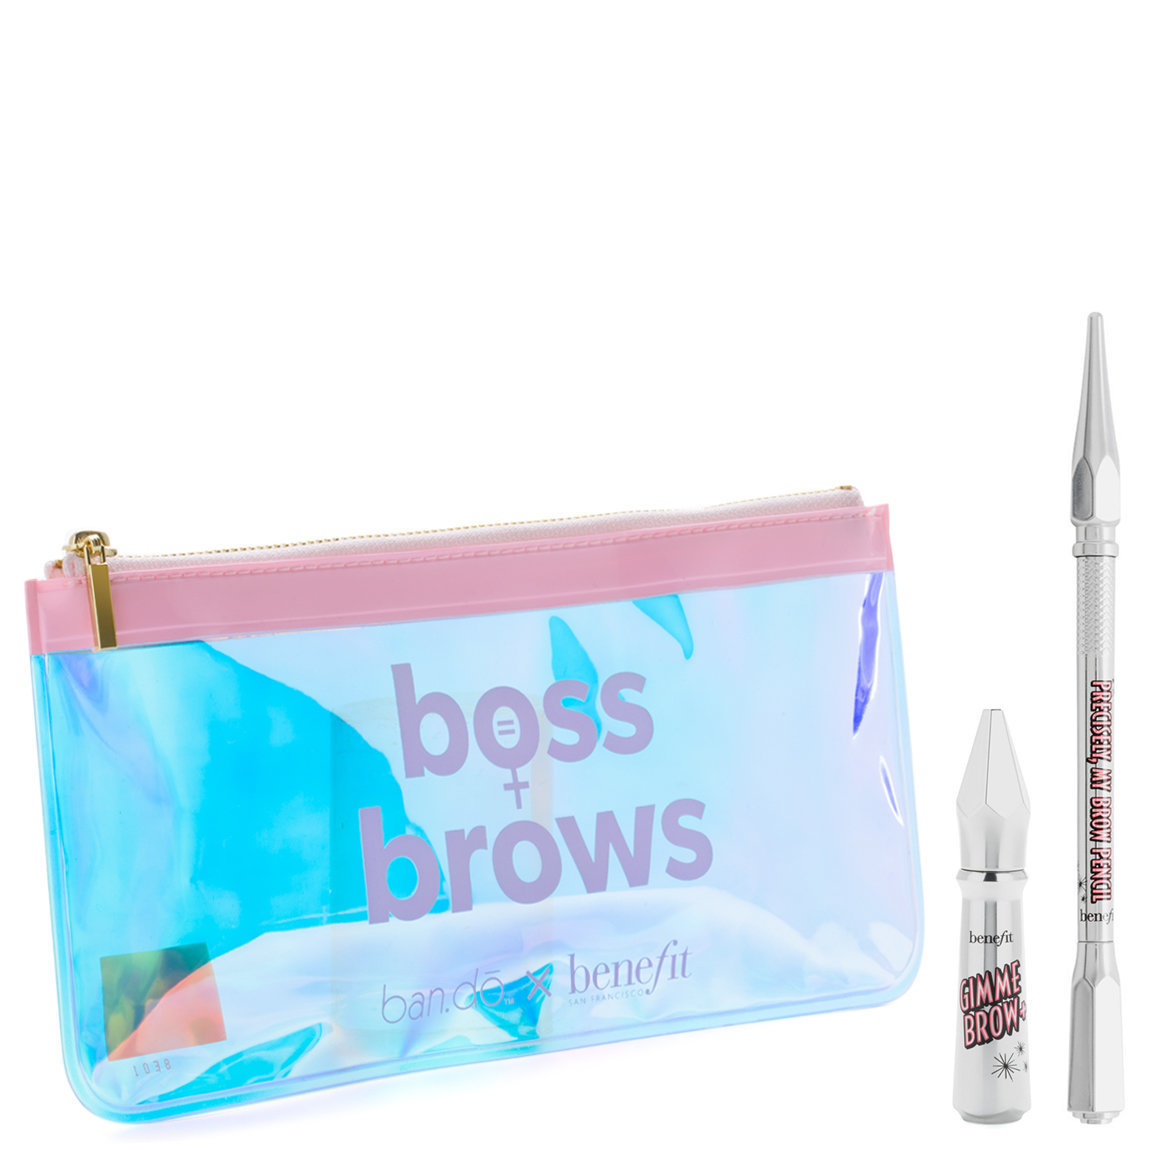 Benefit Cosmetics Boss Brows, Baby! Brow Duo Shade 1